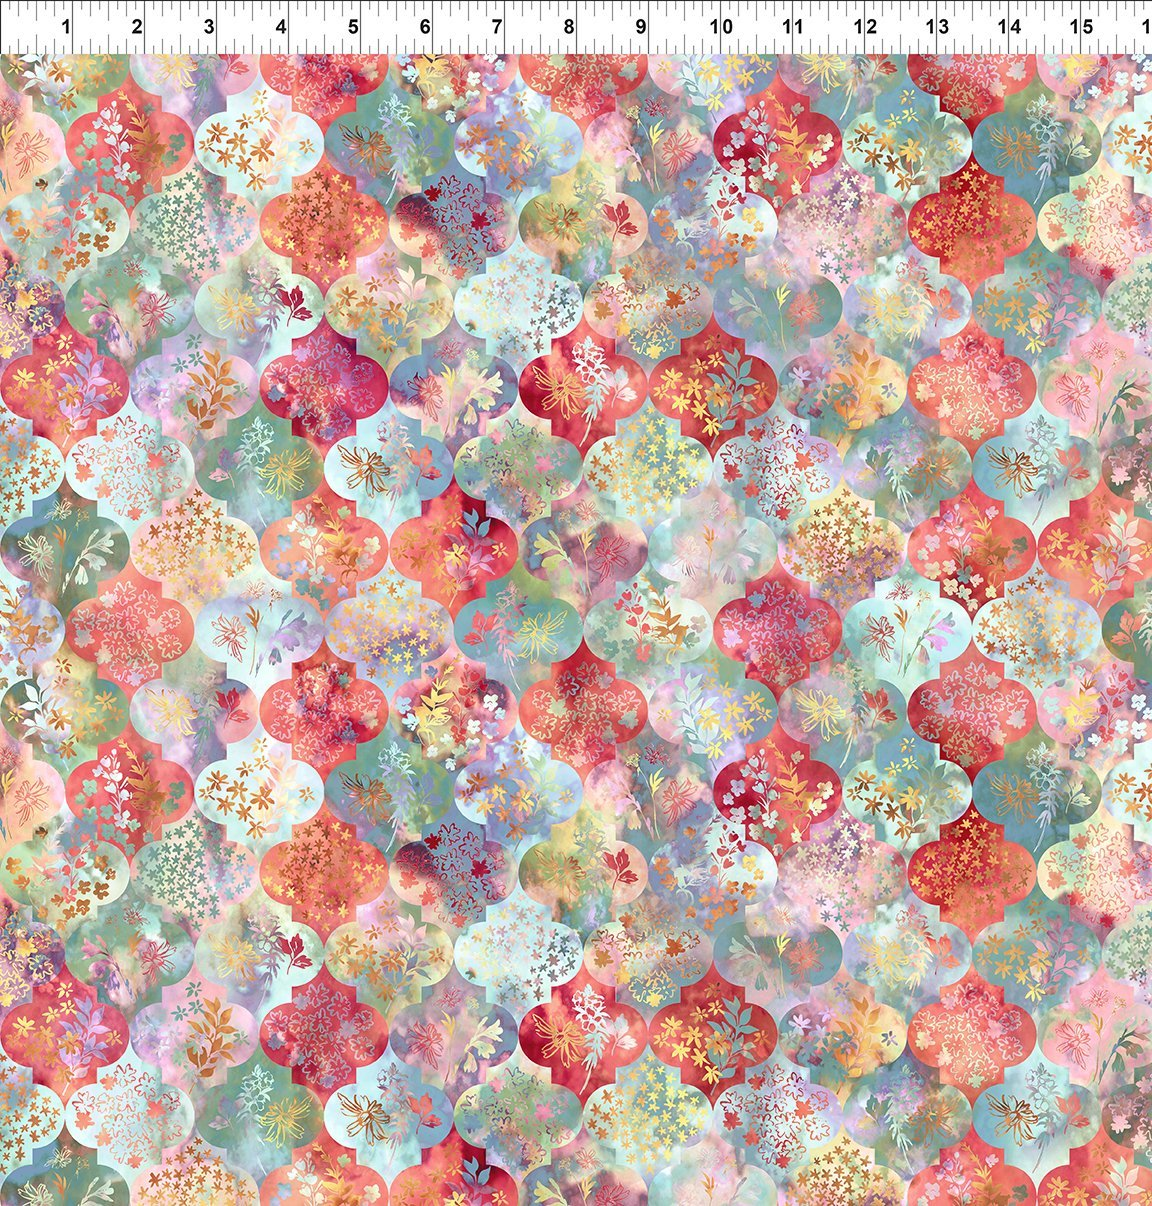 4HVN-1 Haven - Ogee - Multi by Jason Yenter for In The Beginning Fabric